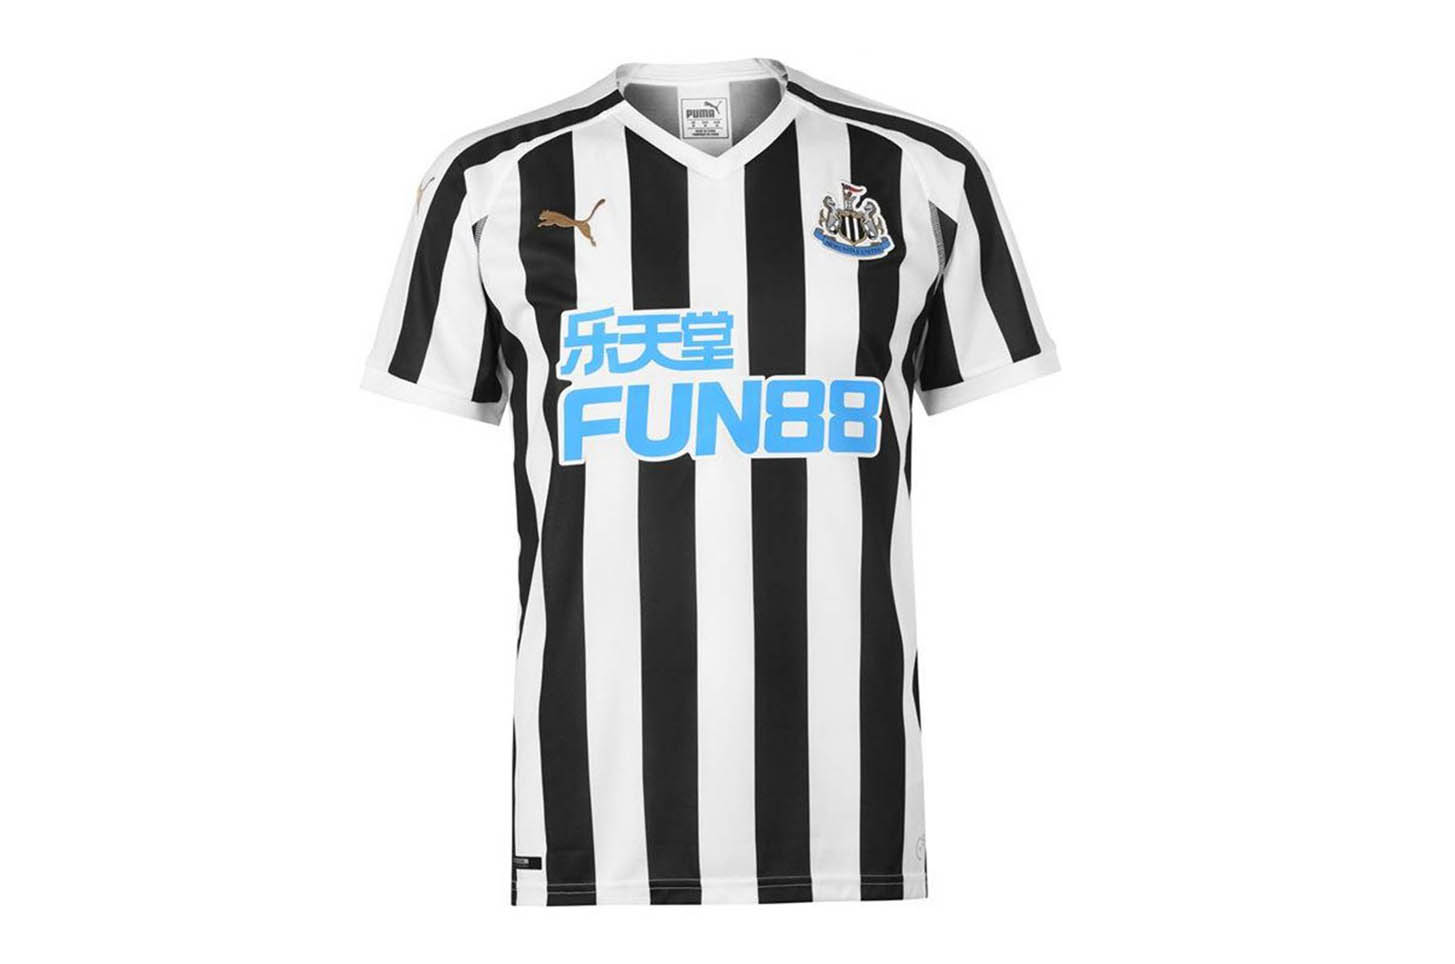 low priced f3458 154f4 Ranking Every 2018/19 Premier League Home Shirt - SoccerBible